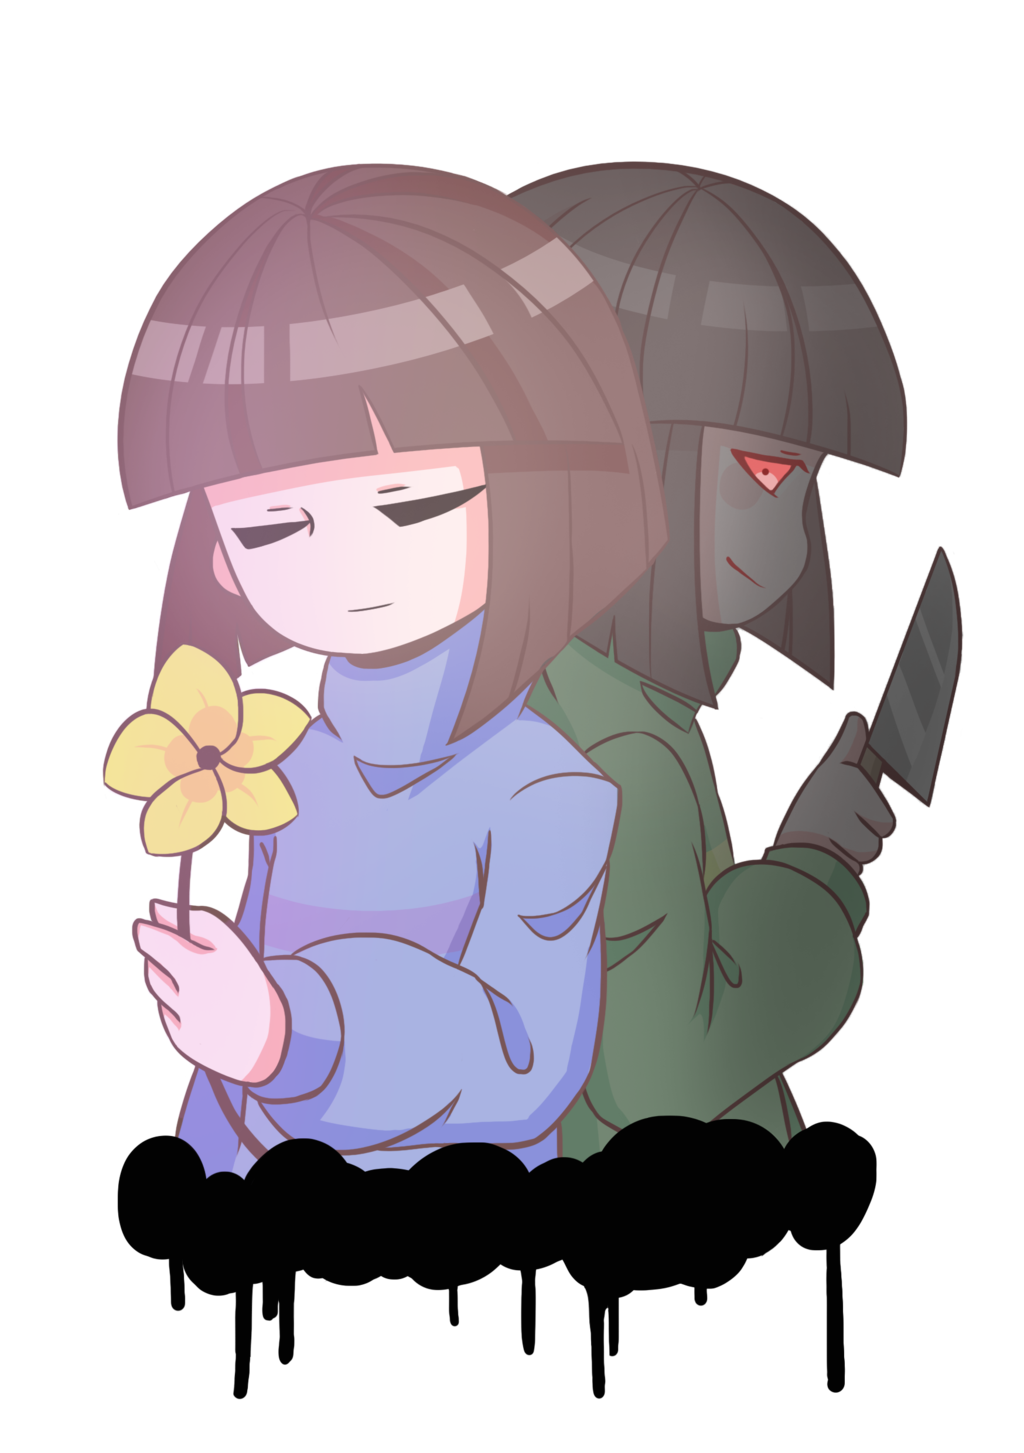 Charra drawing day the dead. Frisk and chara by